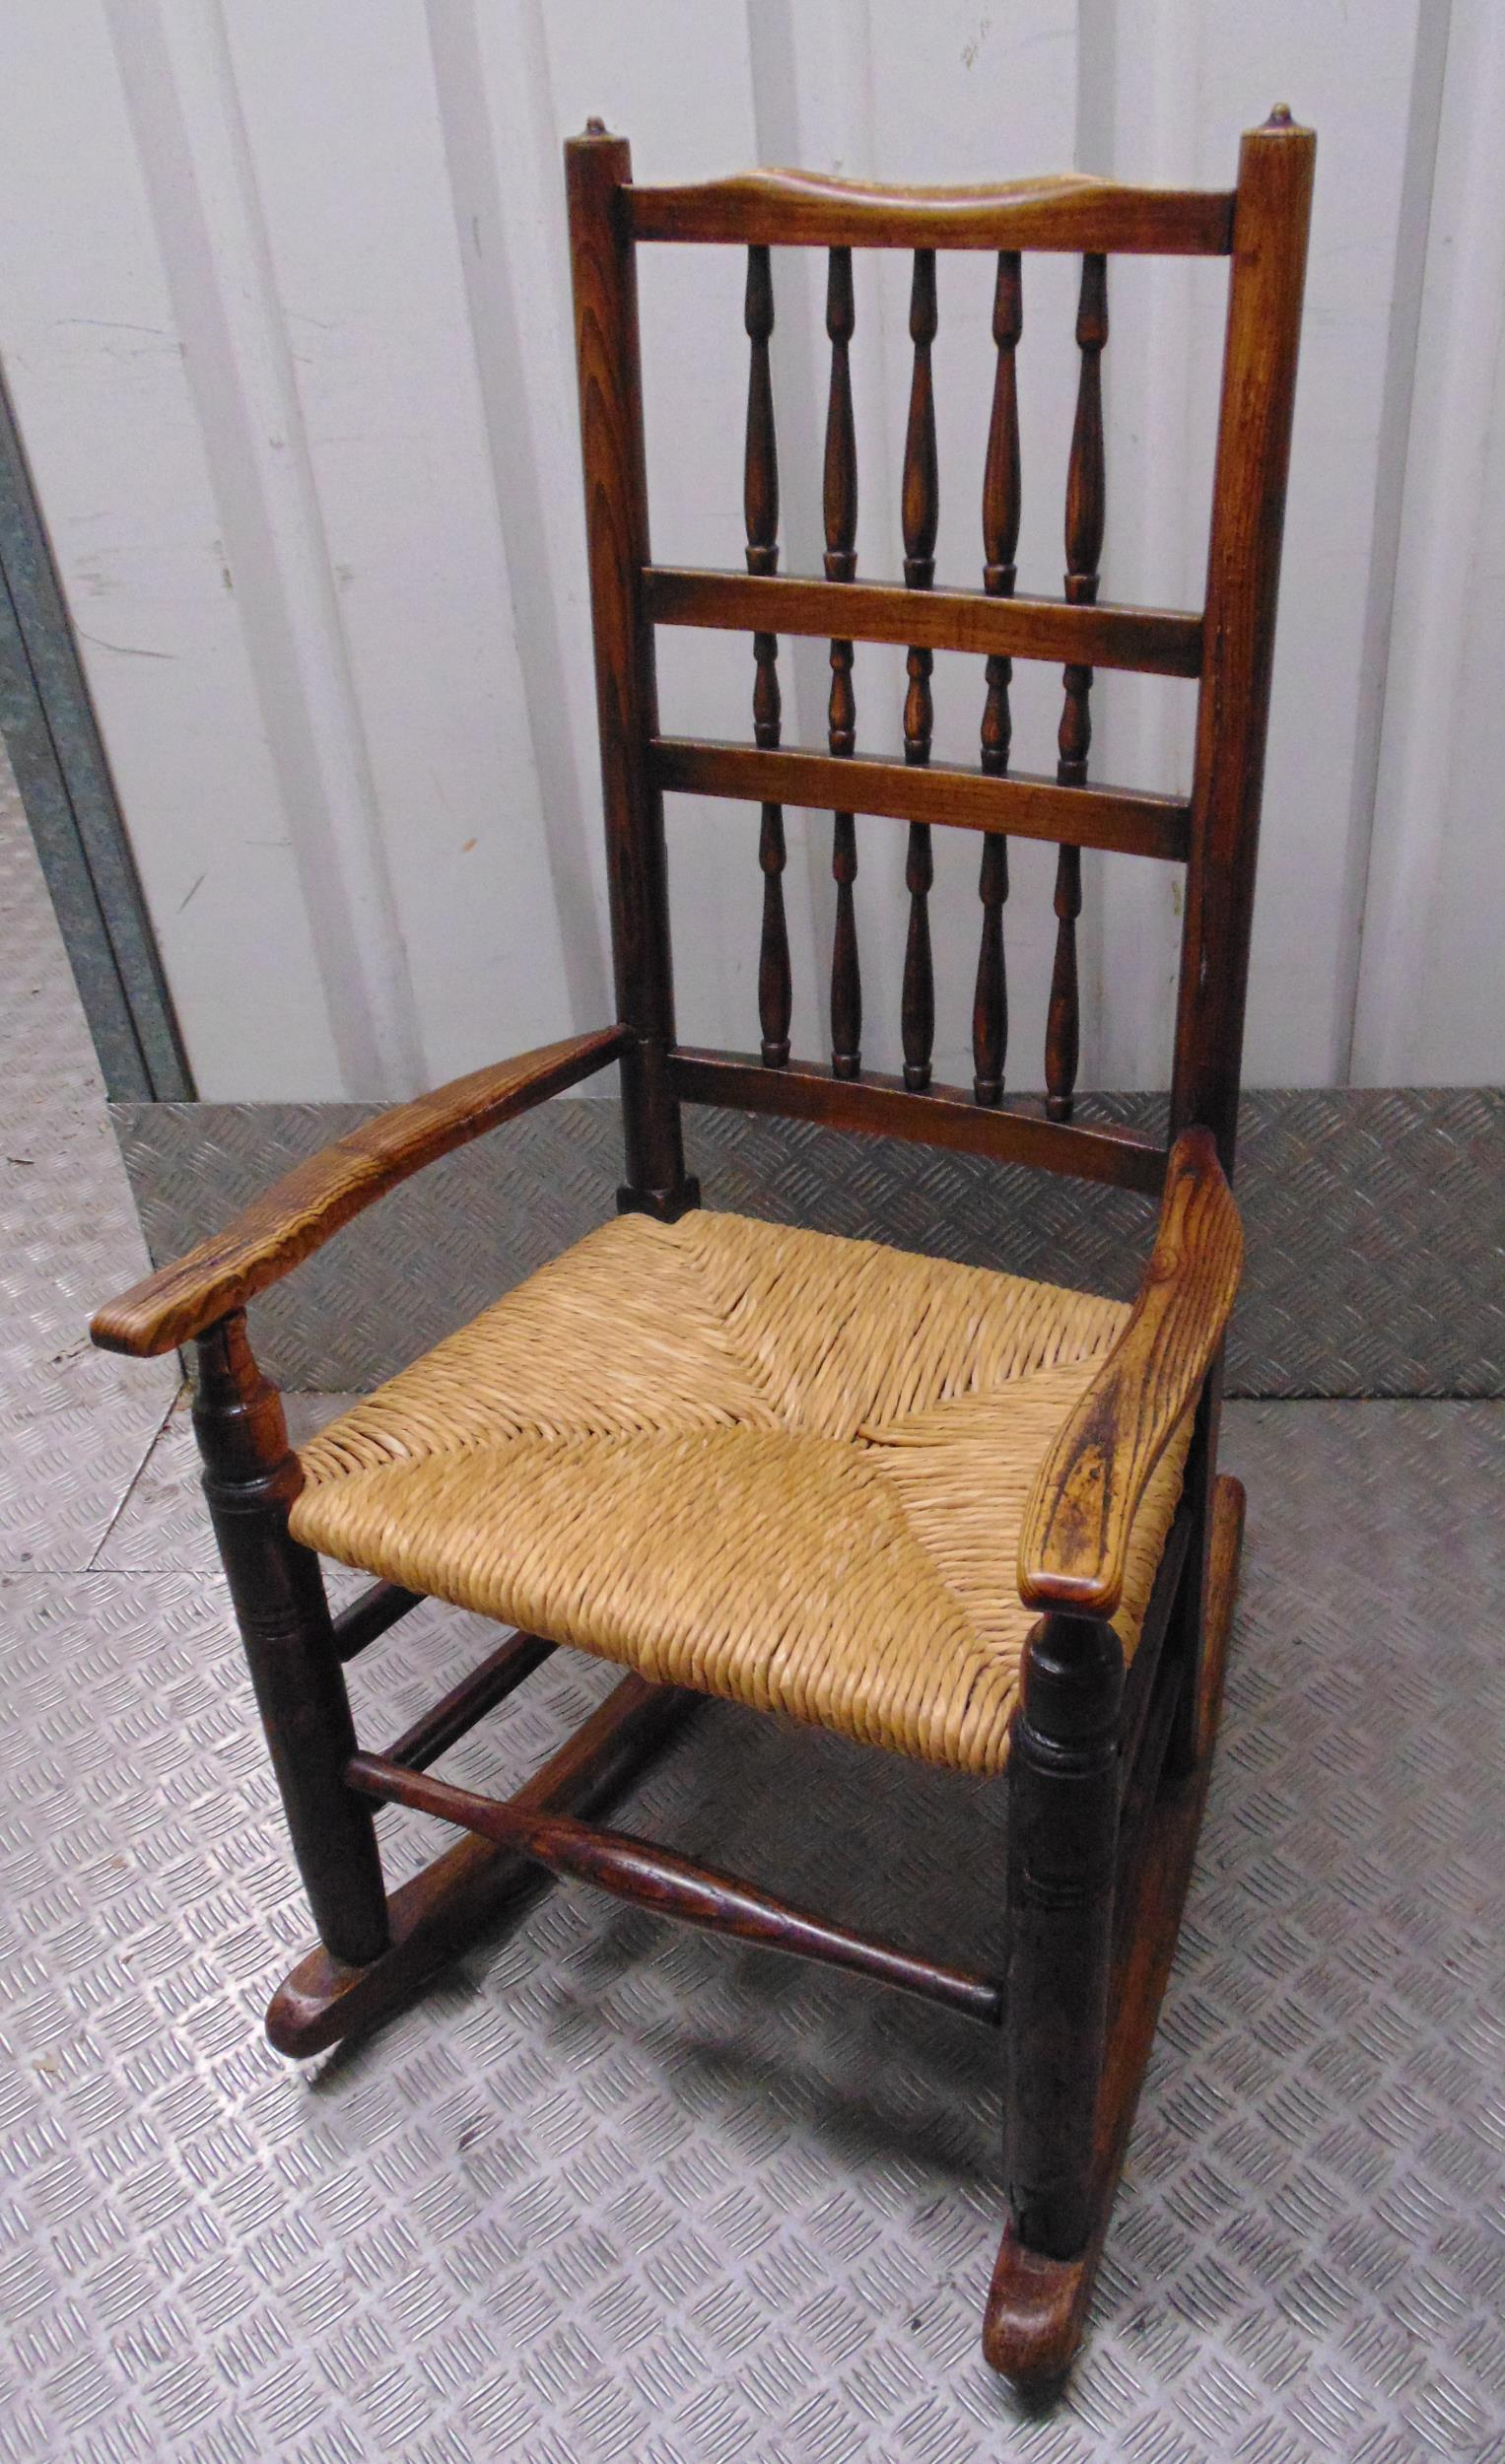 A Victorian oak Cotton Mill spindle rocking chair with rush matting seat